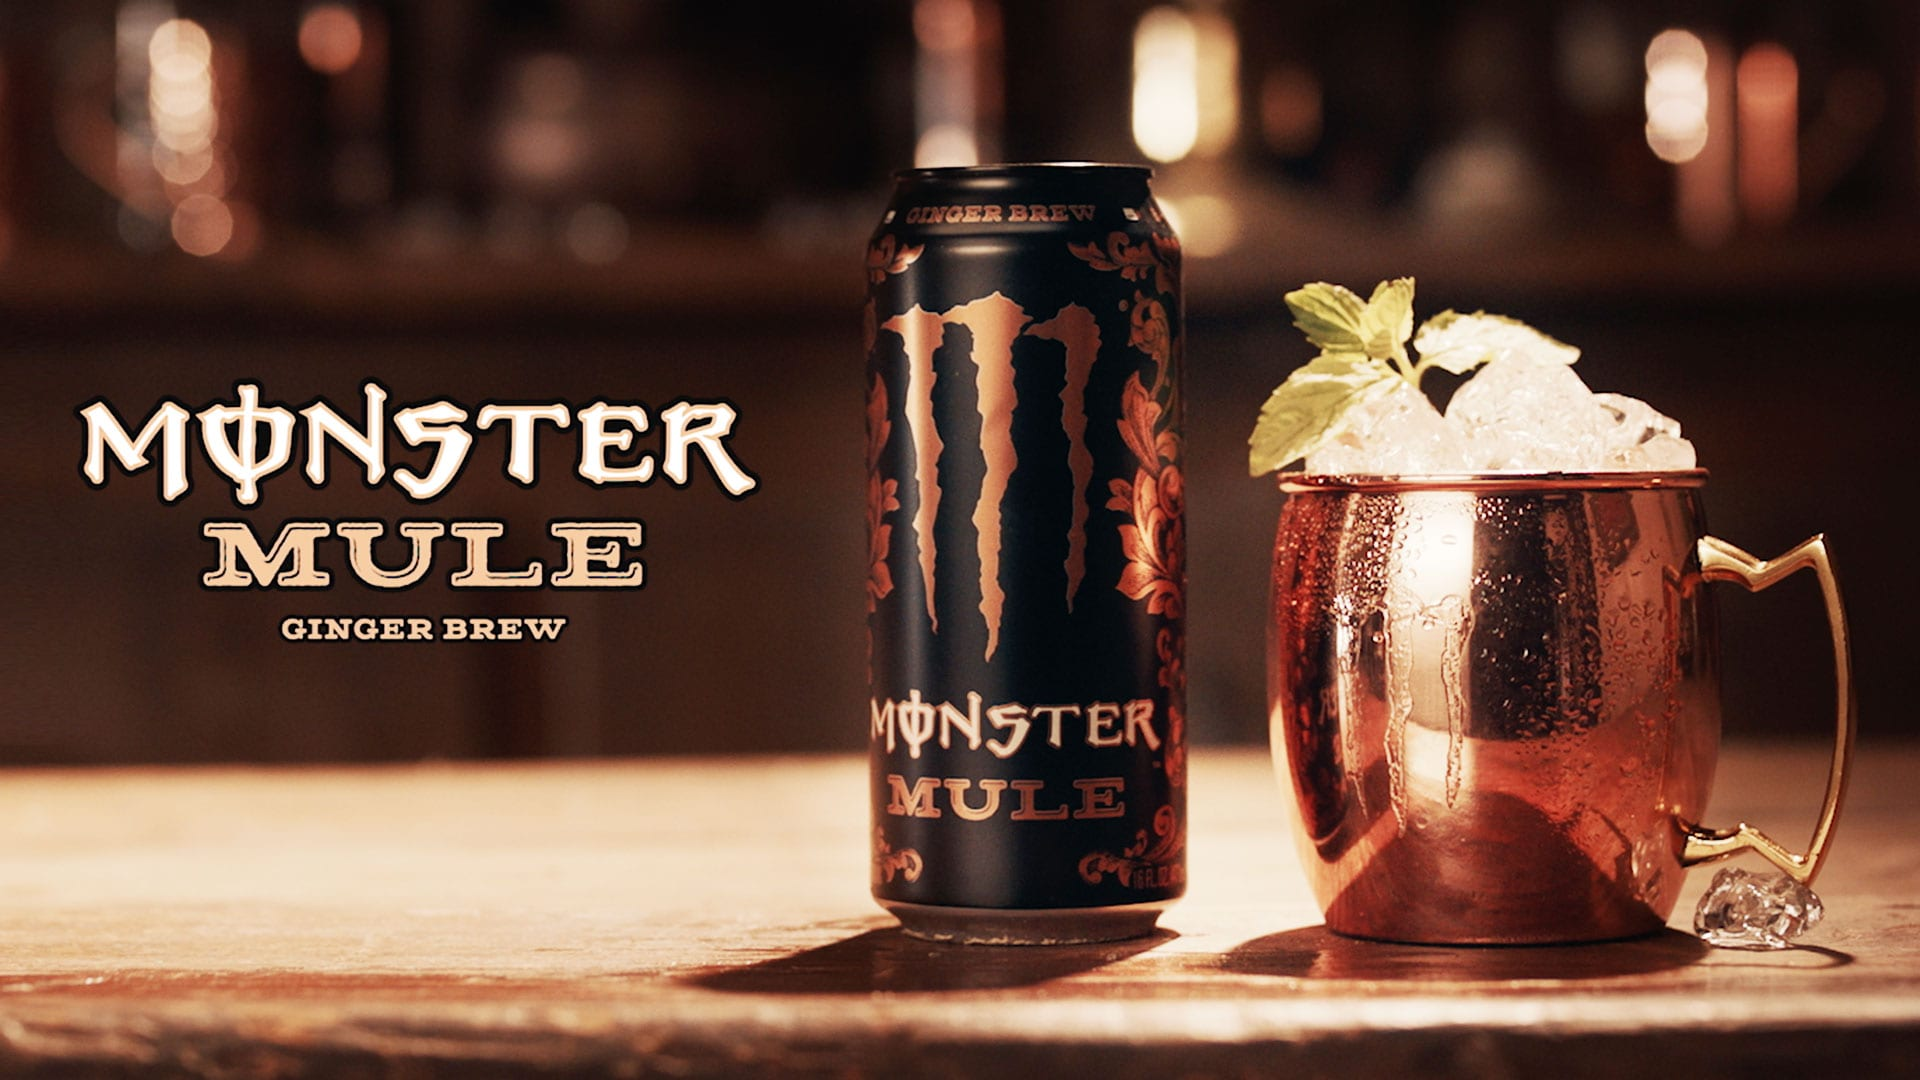 New Monster Mule from Monster Energy. Now at Tom Thumb Food Stores